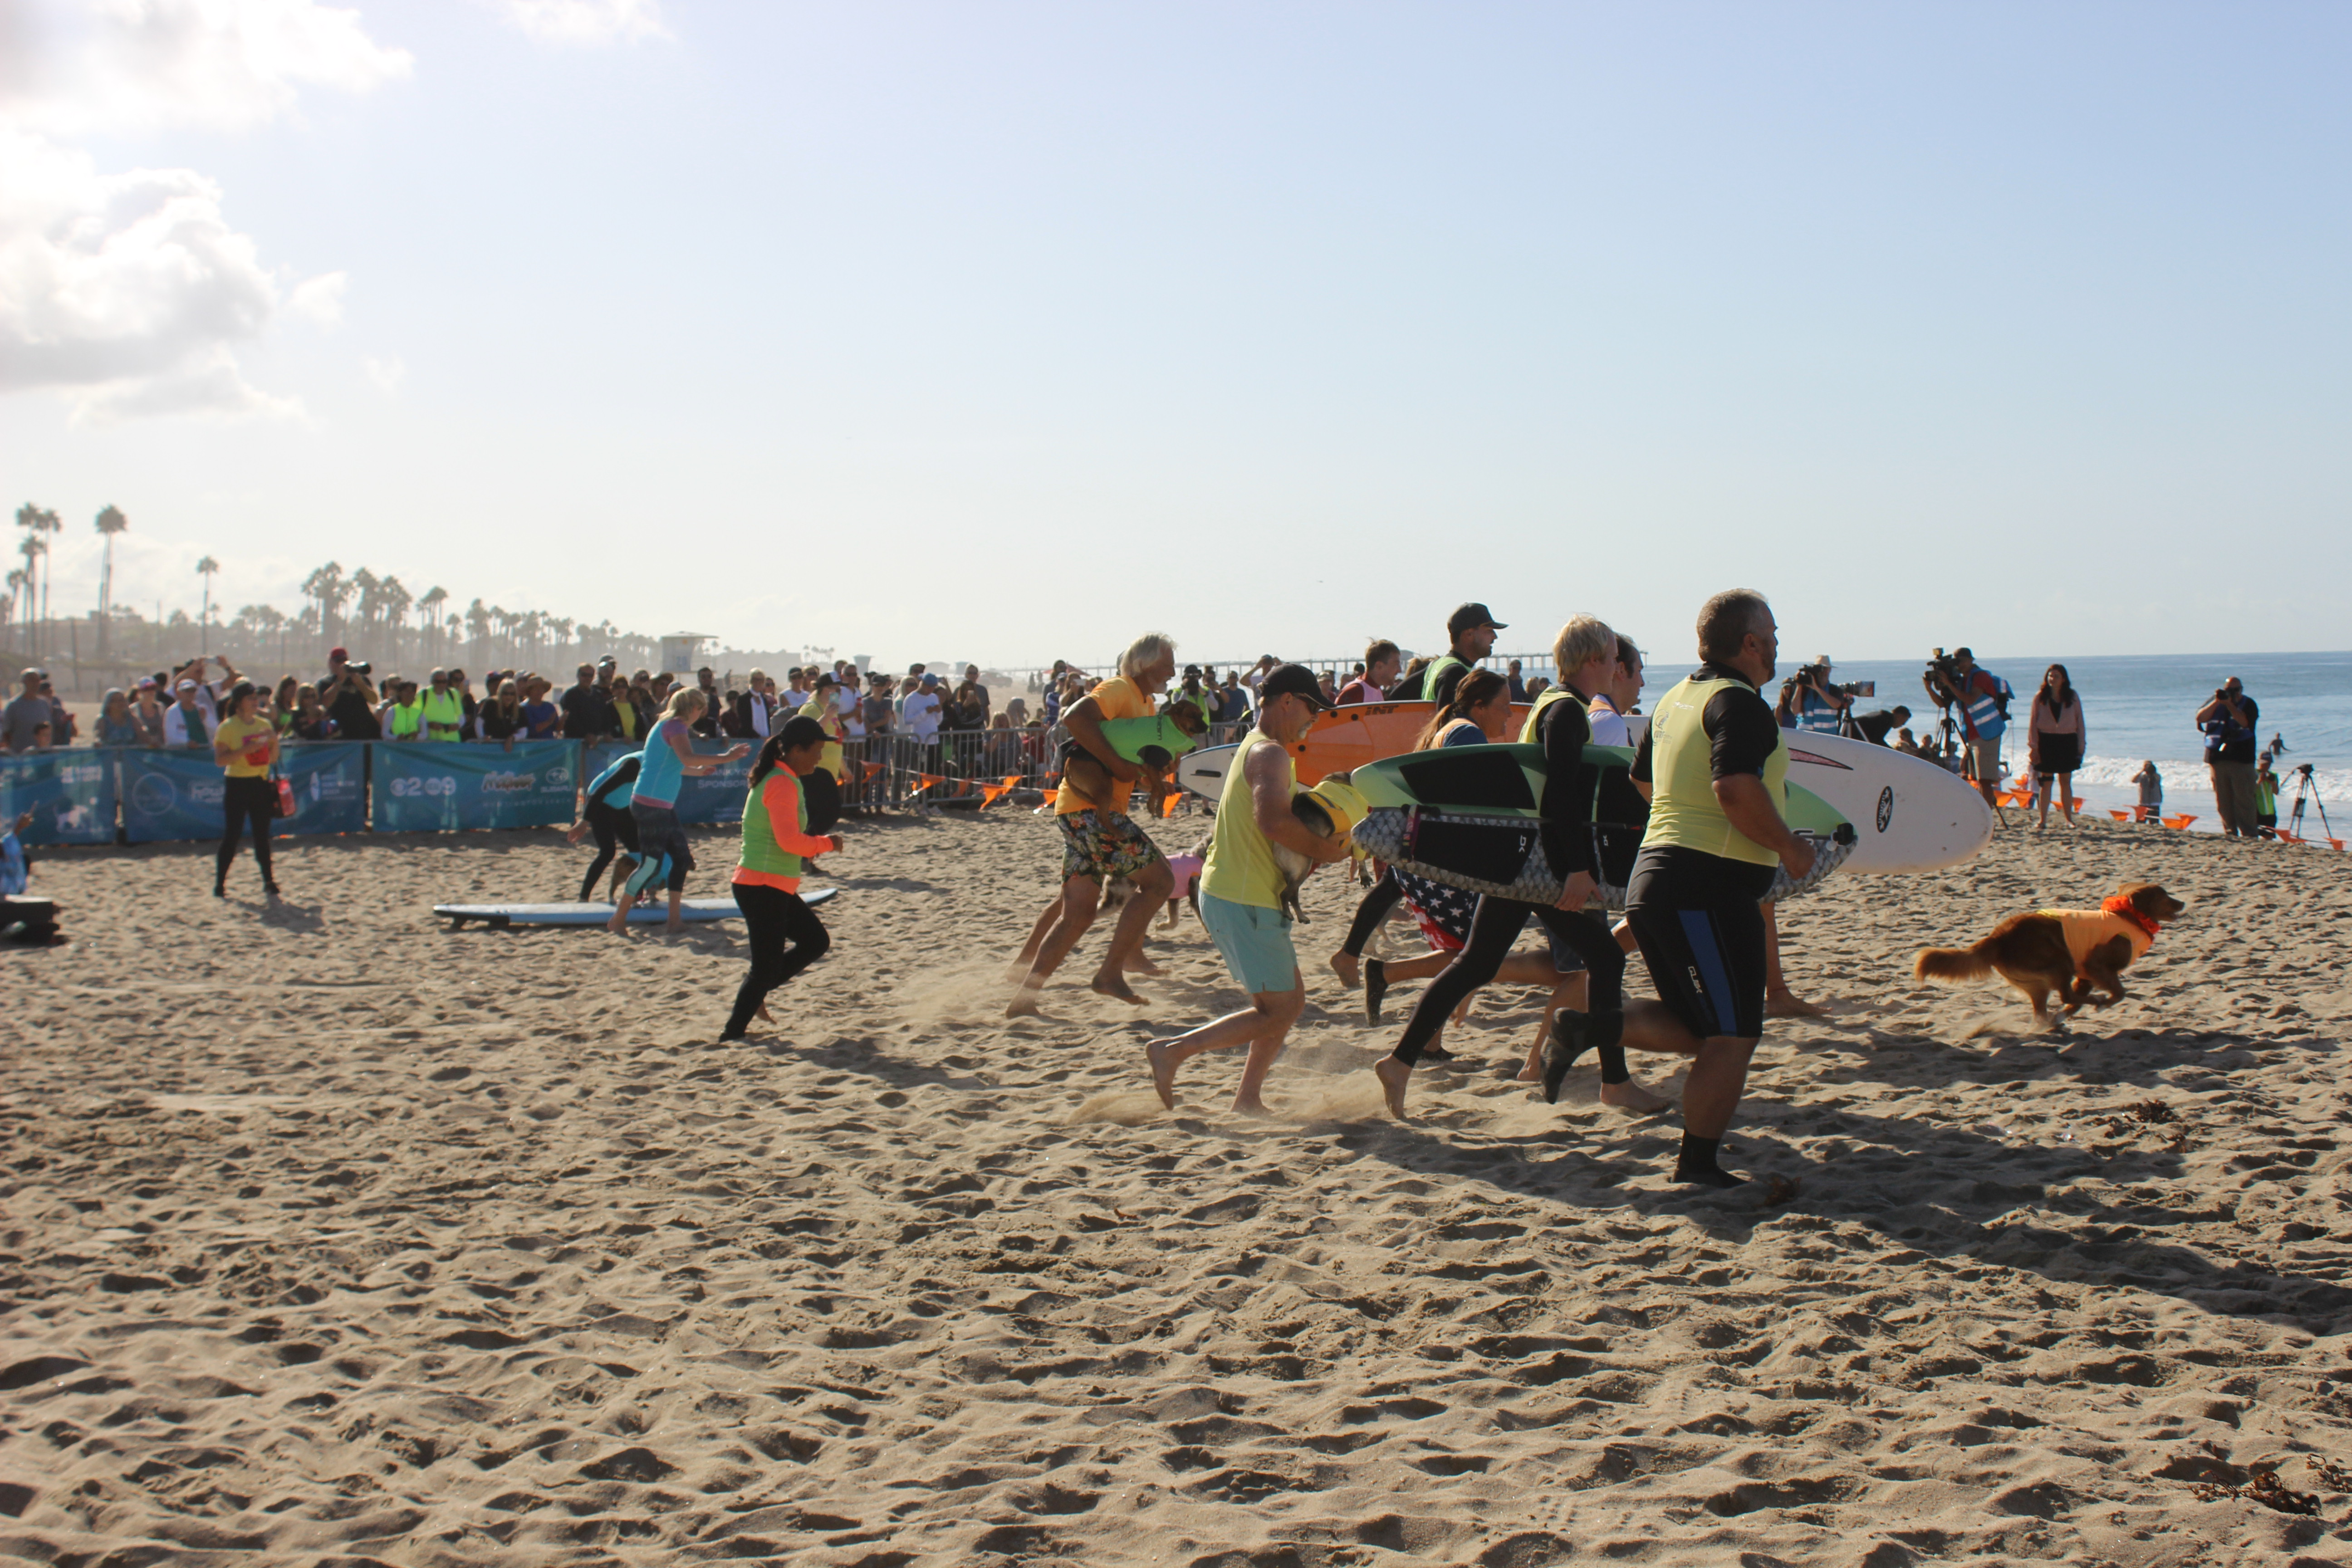 Competitors run towards the water at the sound of the opening bell.